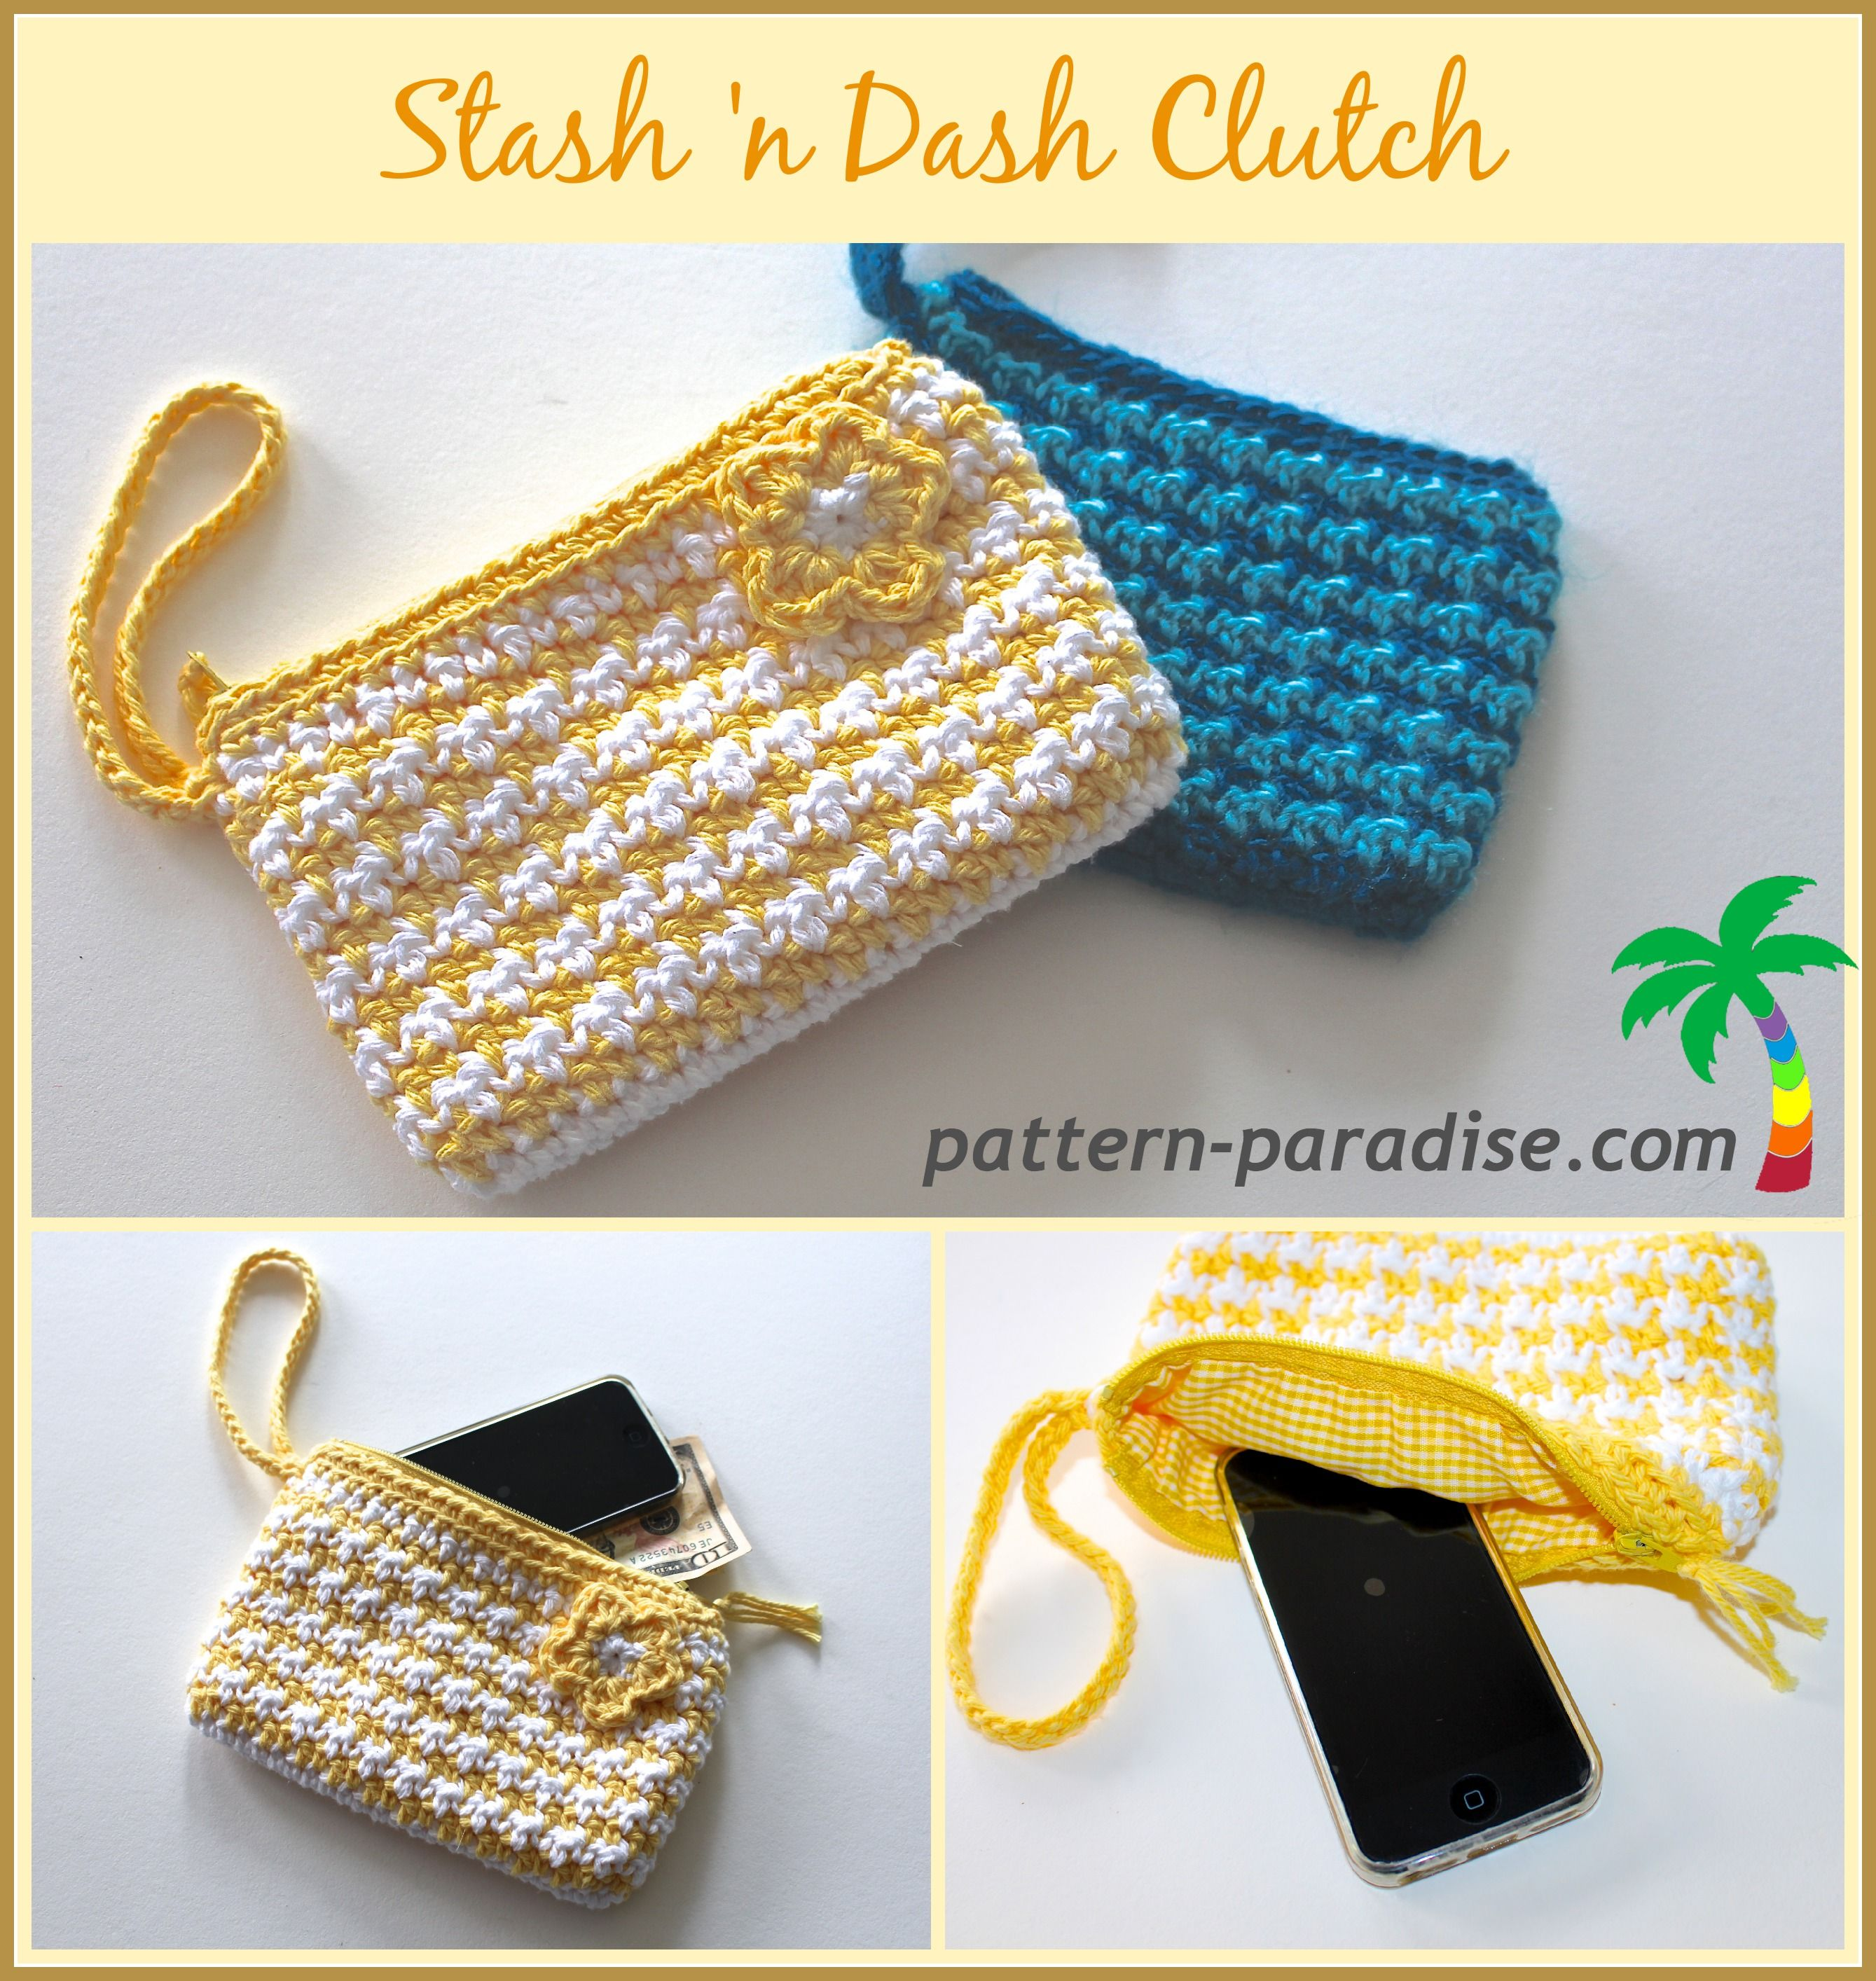 Stash n dash clutch free crochet pattern from pattern paradise stash n dash clutch free crochet pattern from pattern paradise this great looking bankloansurffo Gallery